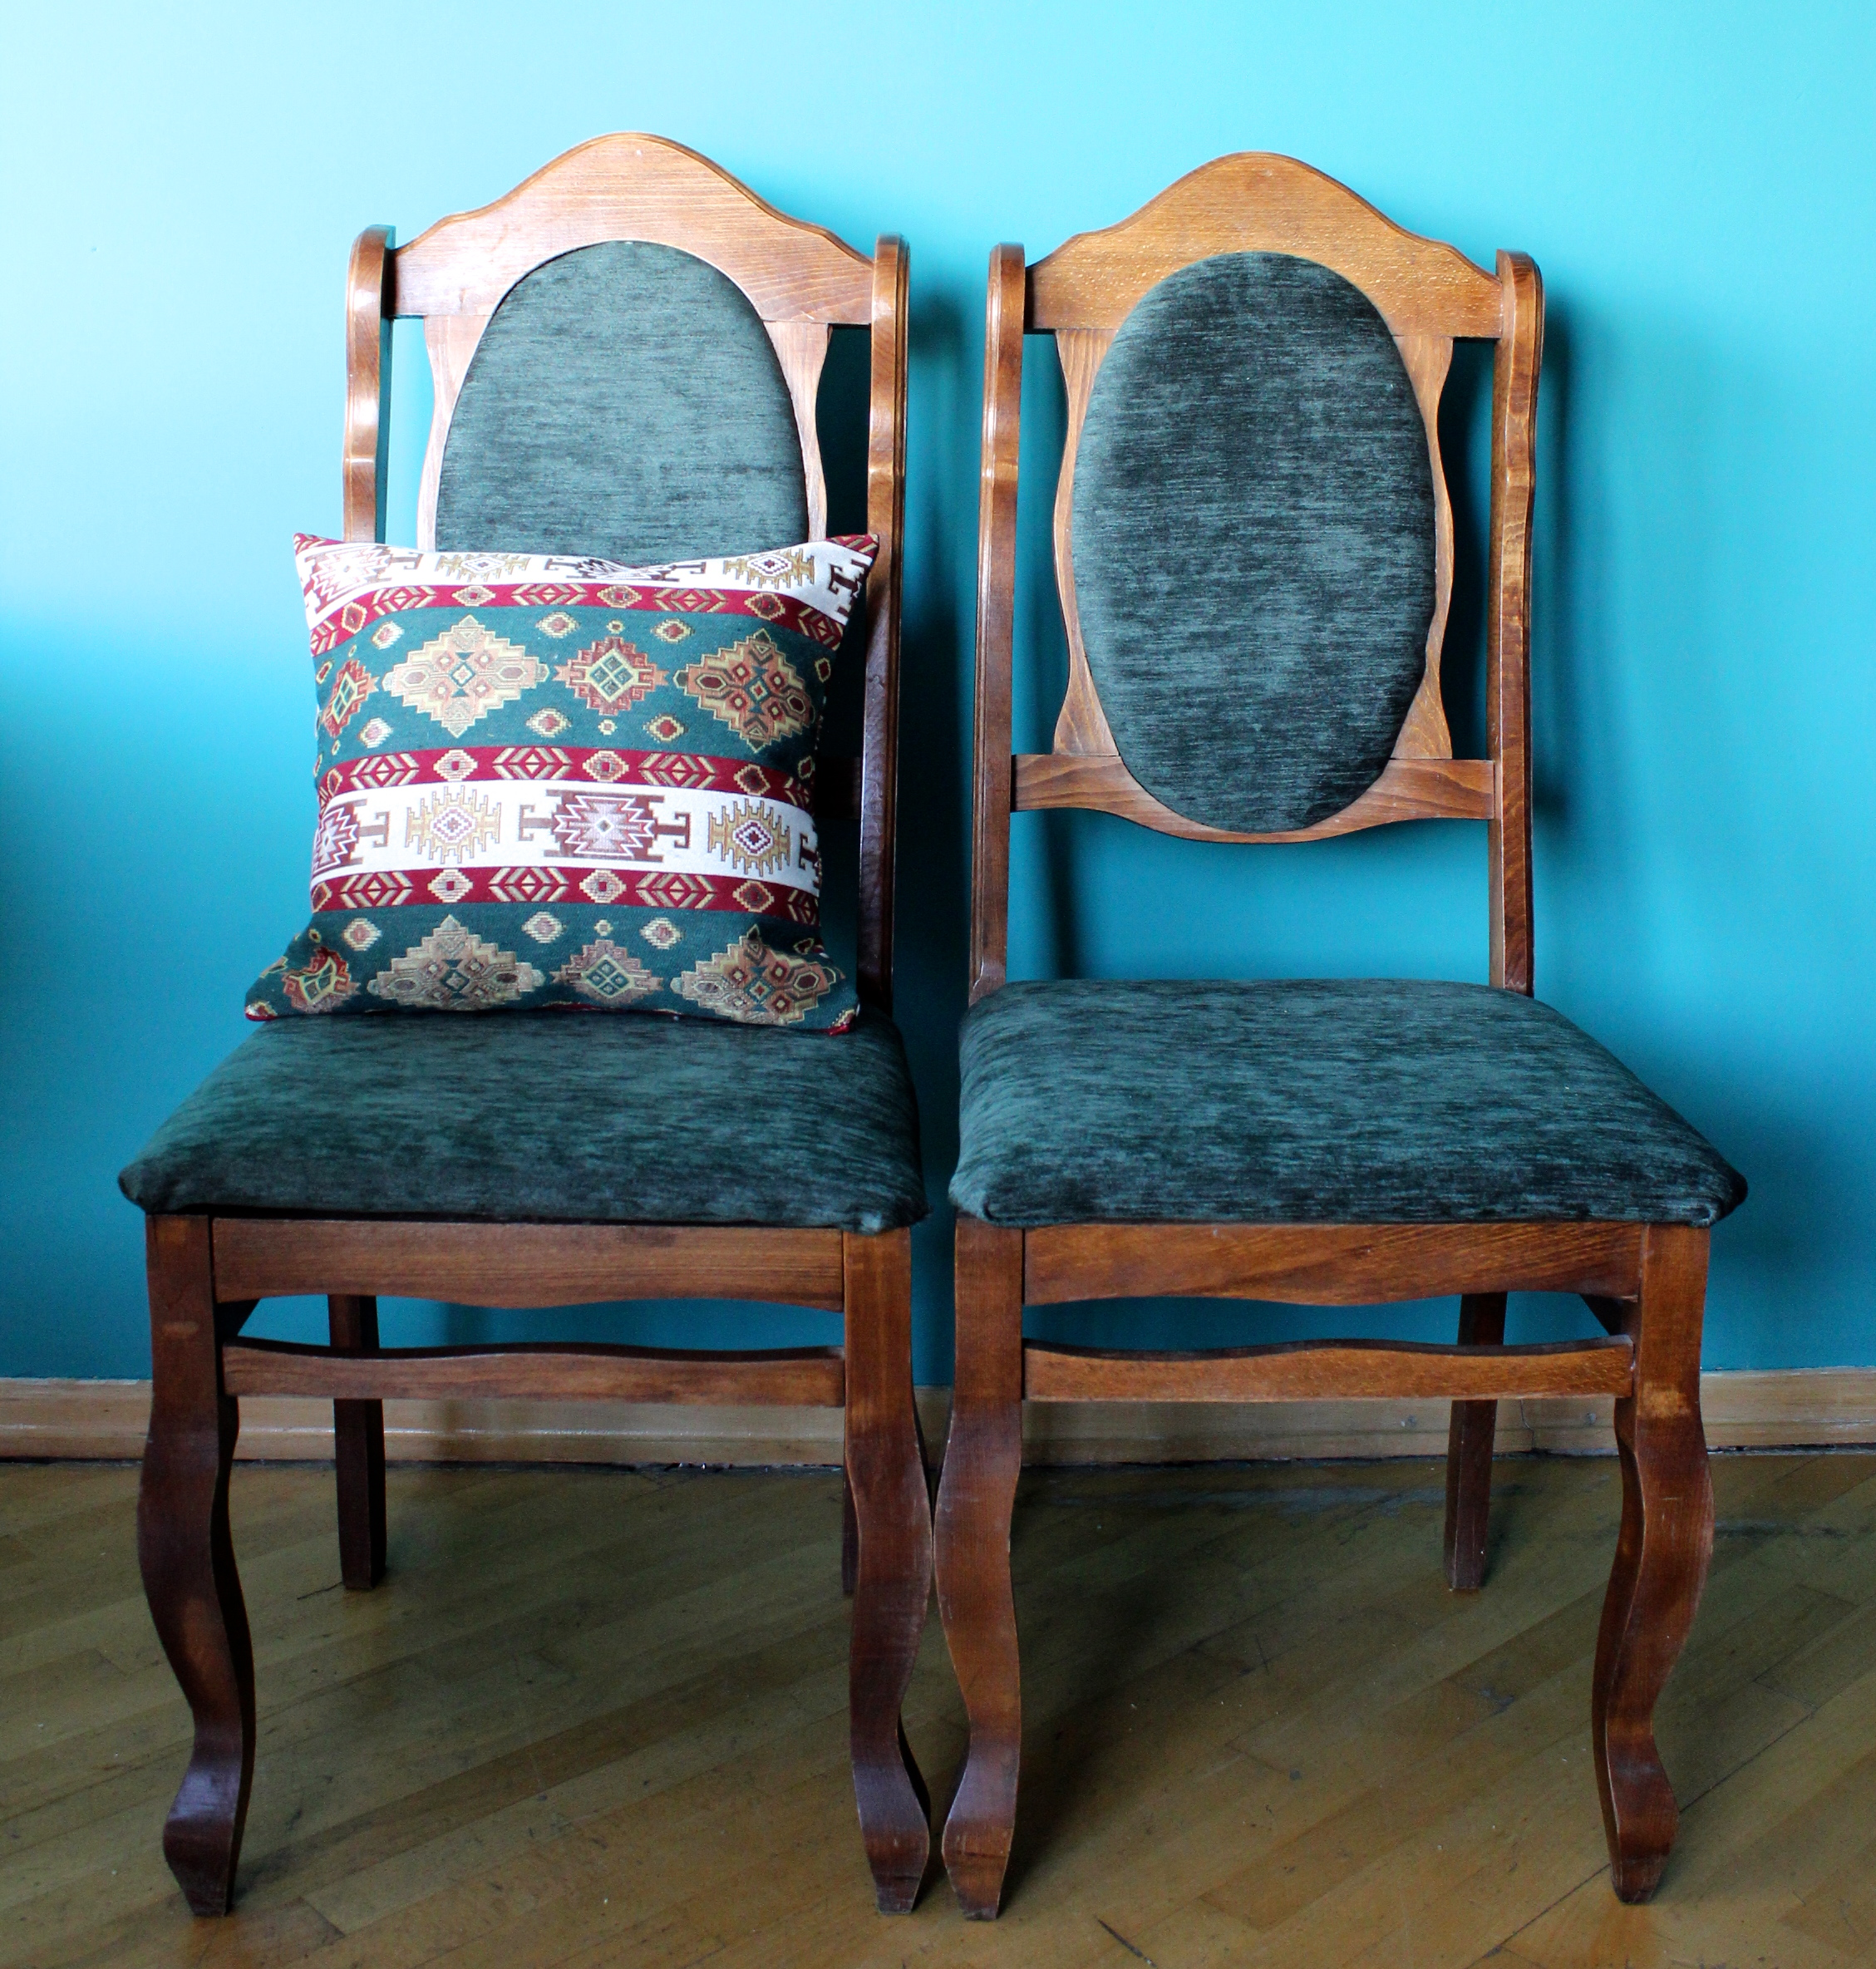 DIY Project Reupholstering Old Chairs L Essenziale